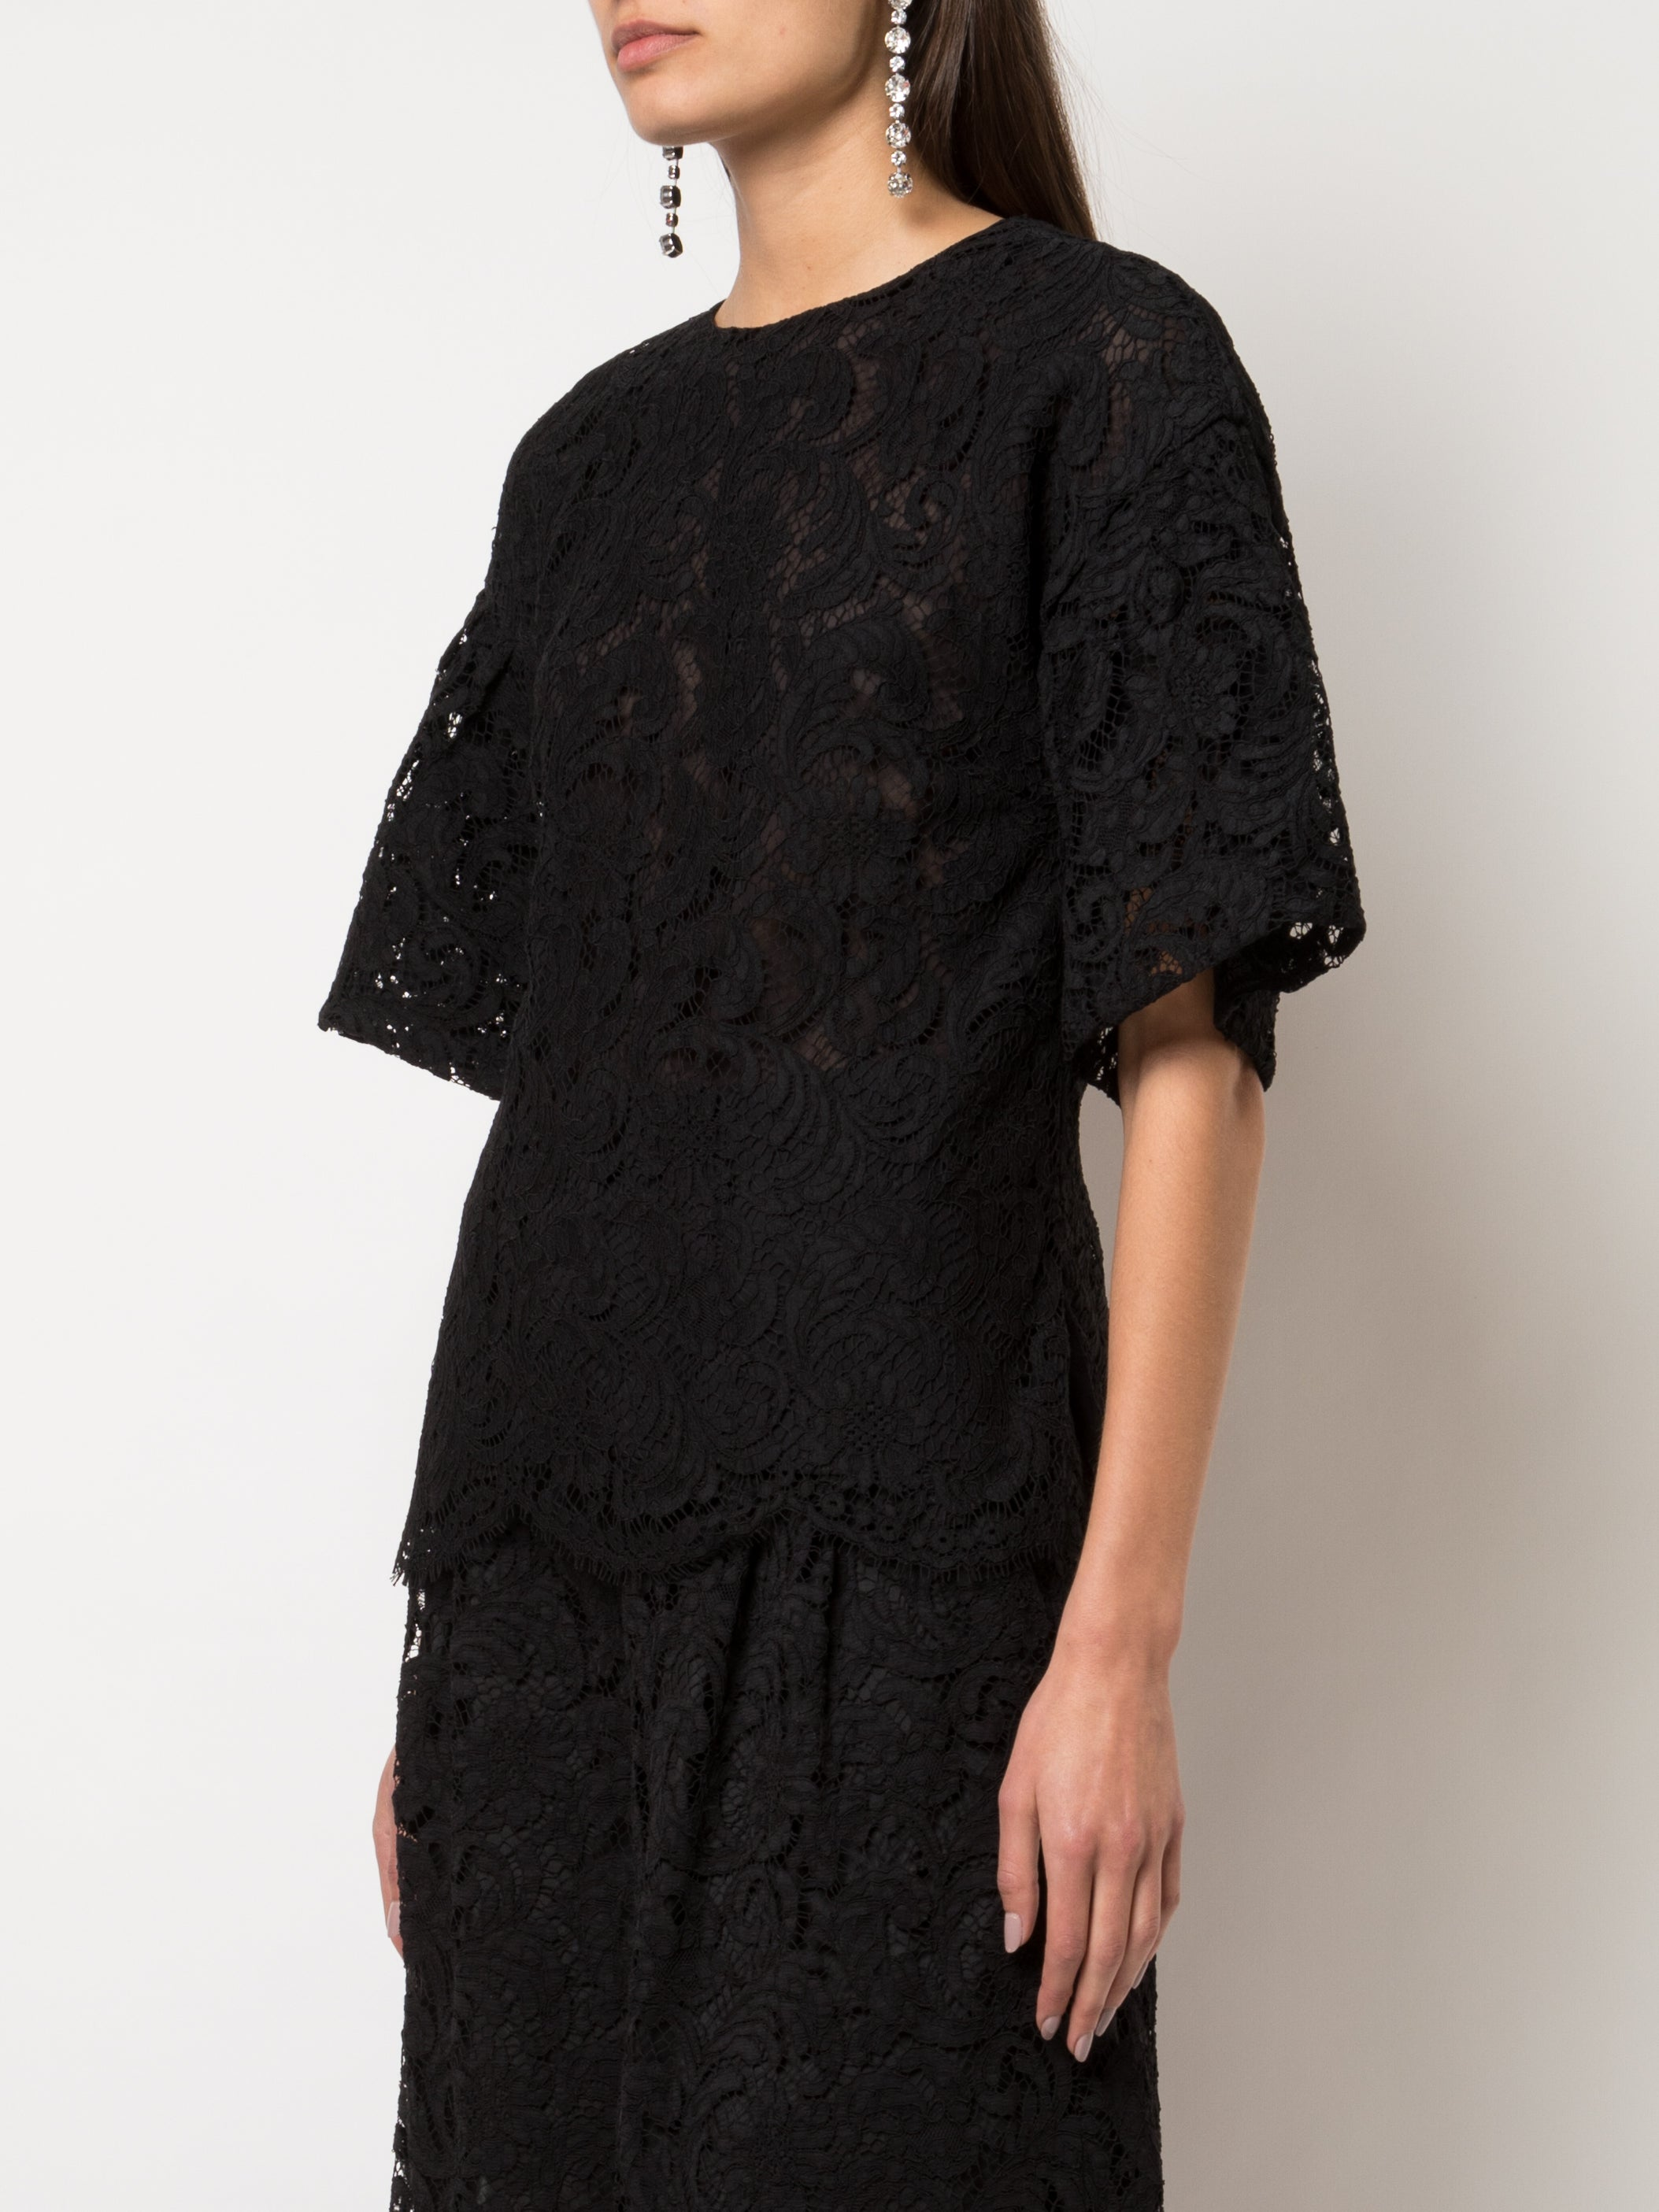 FLUTTER SLEEVE TOP IN CORDED LACE